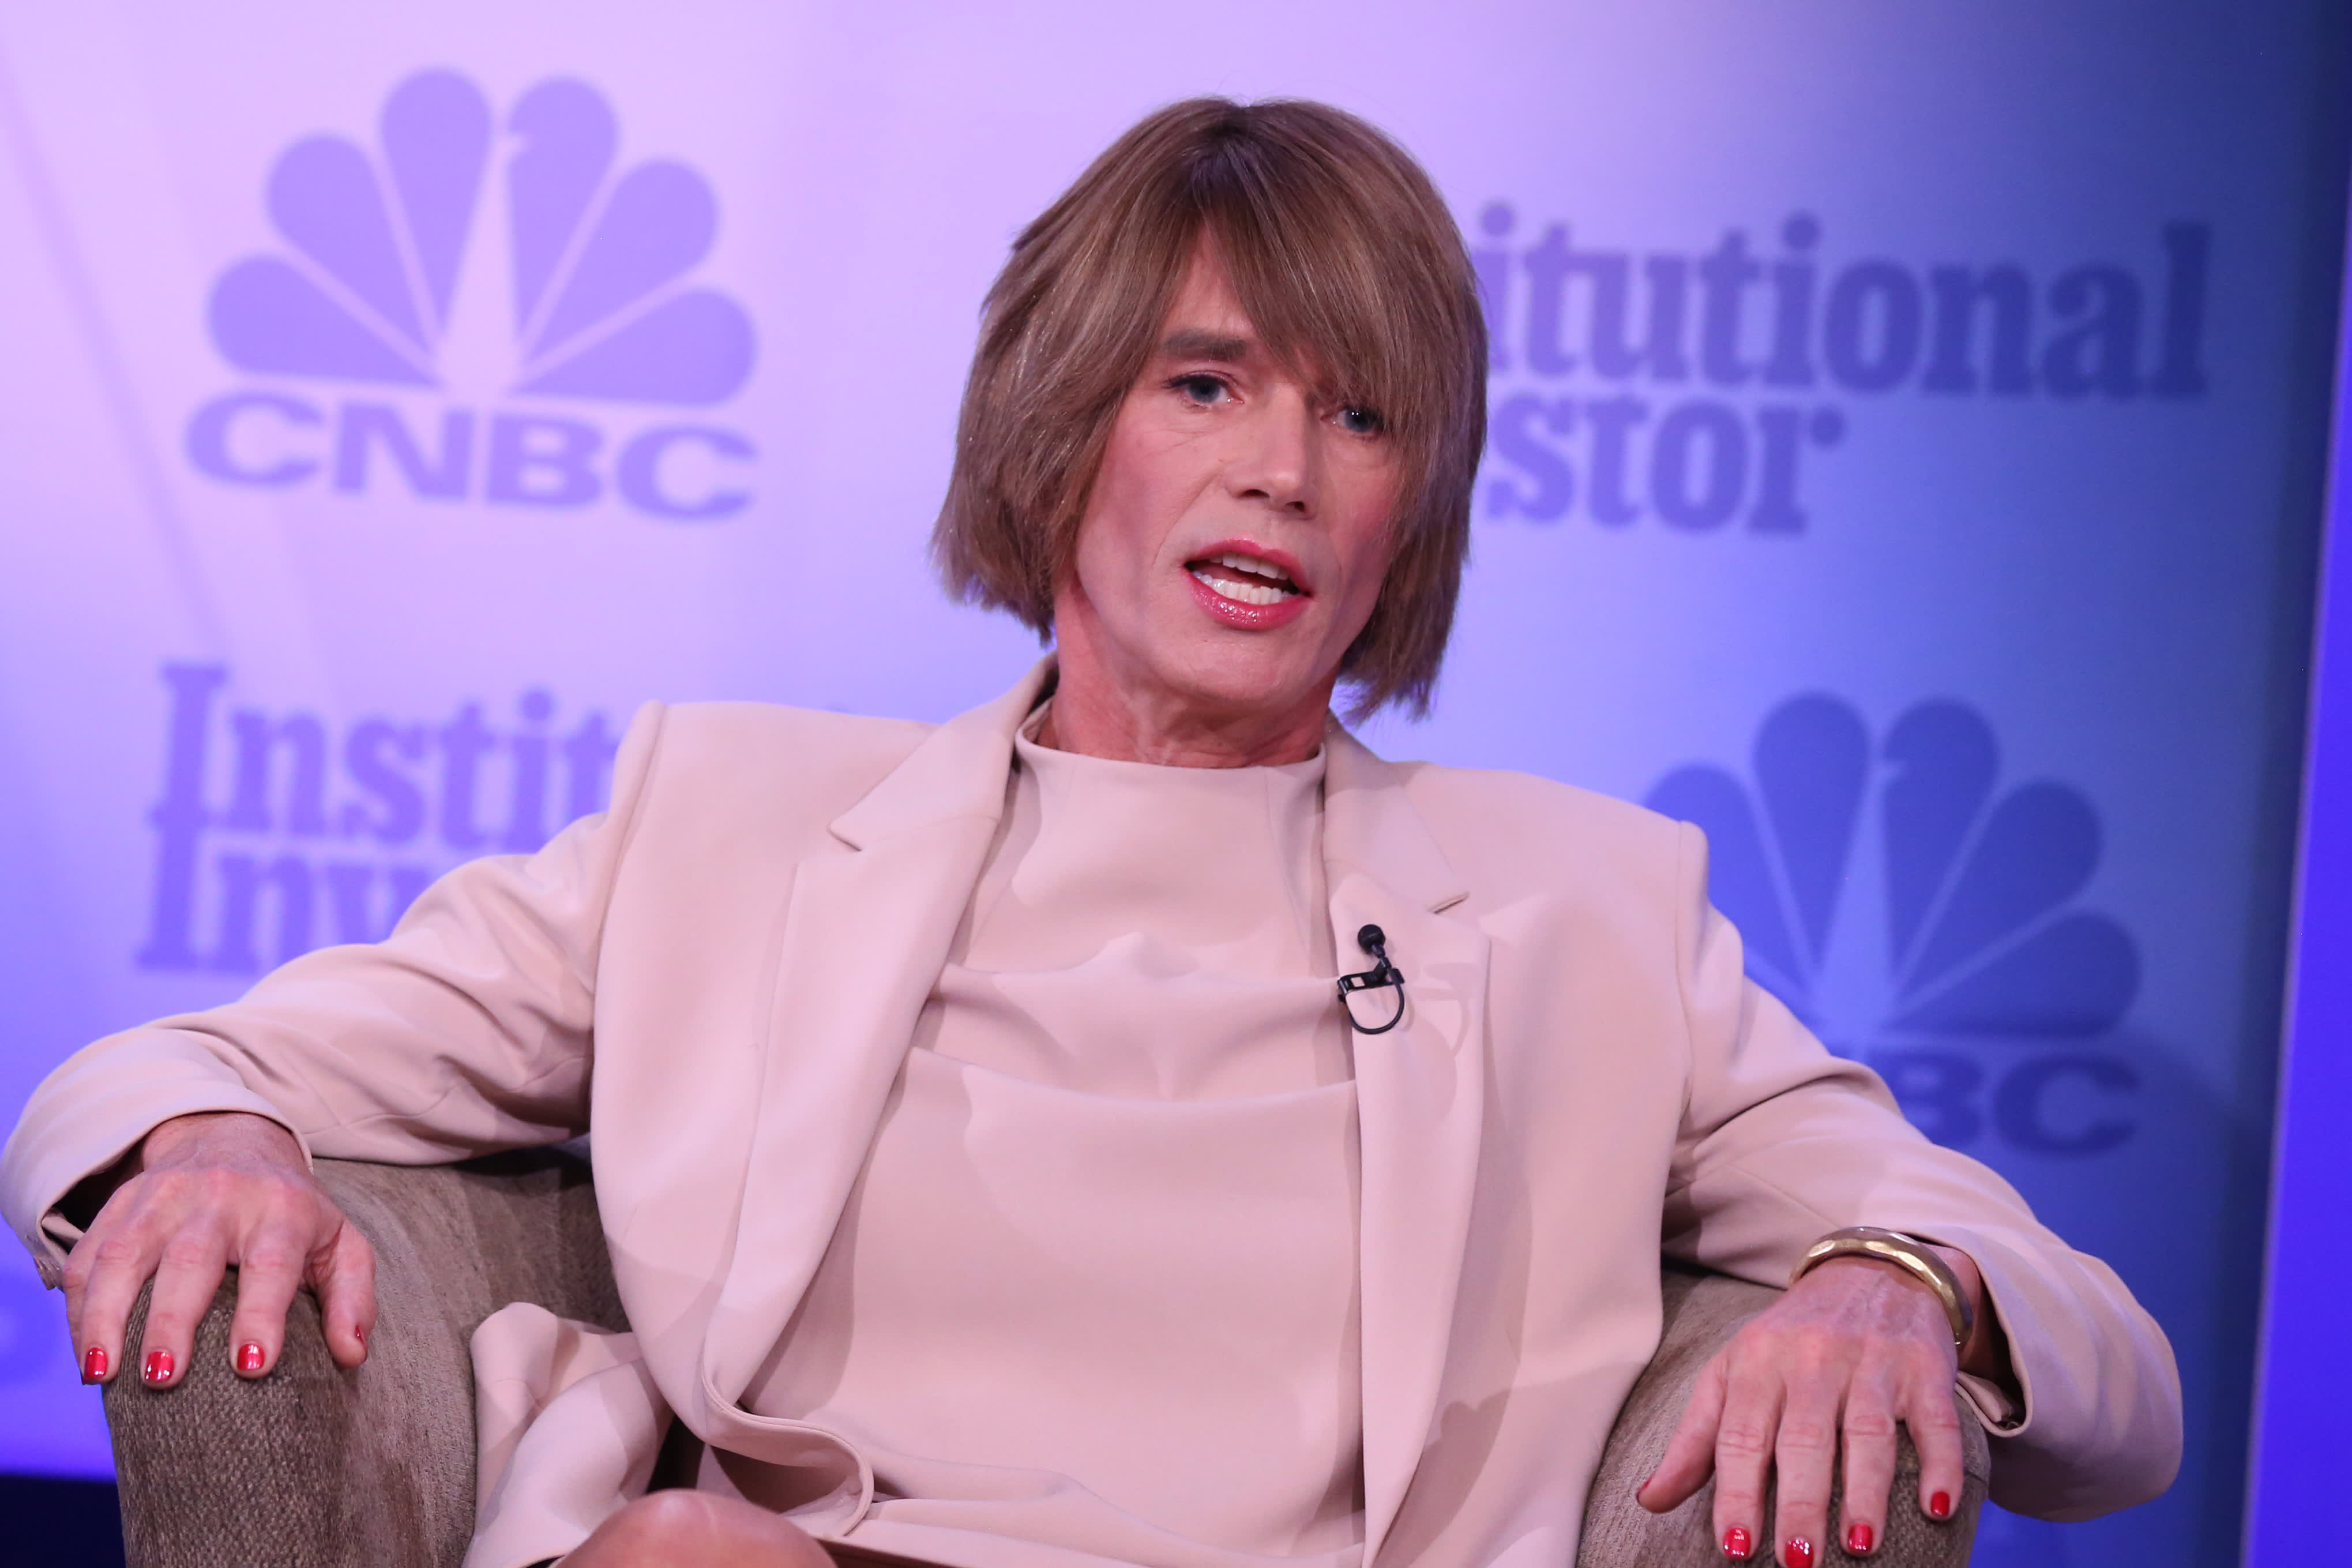 Coming out as transgender at Goldman Sachs: 'You basically pick a day and you flip a switch'